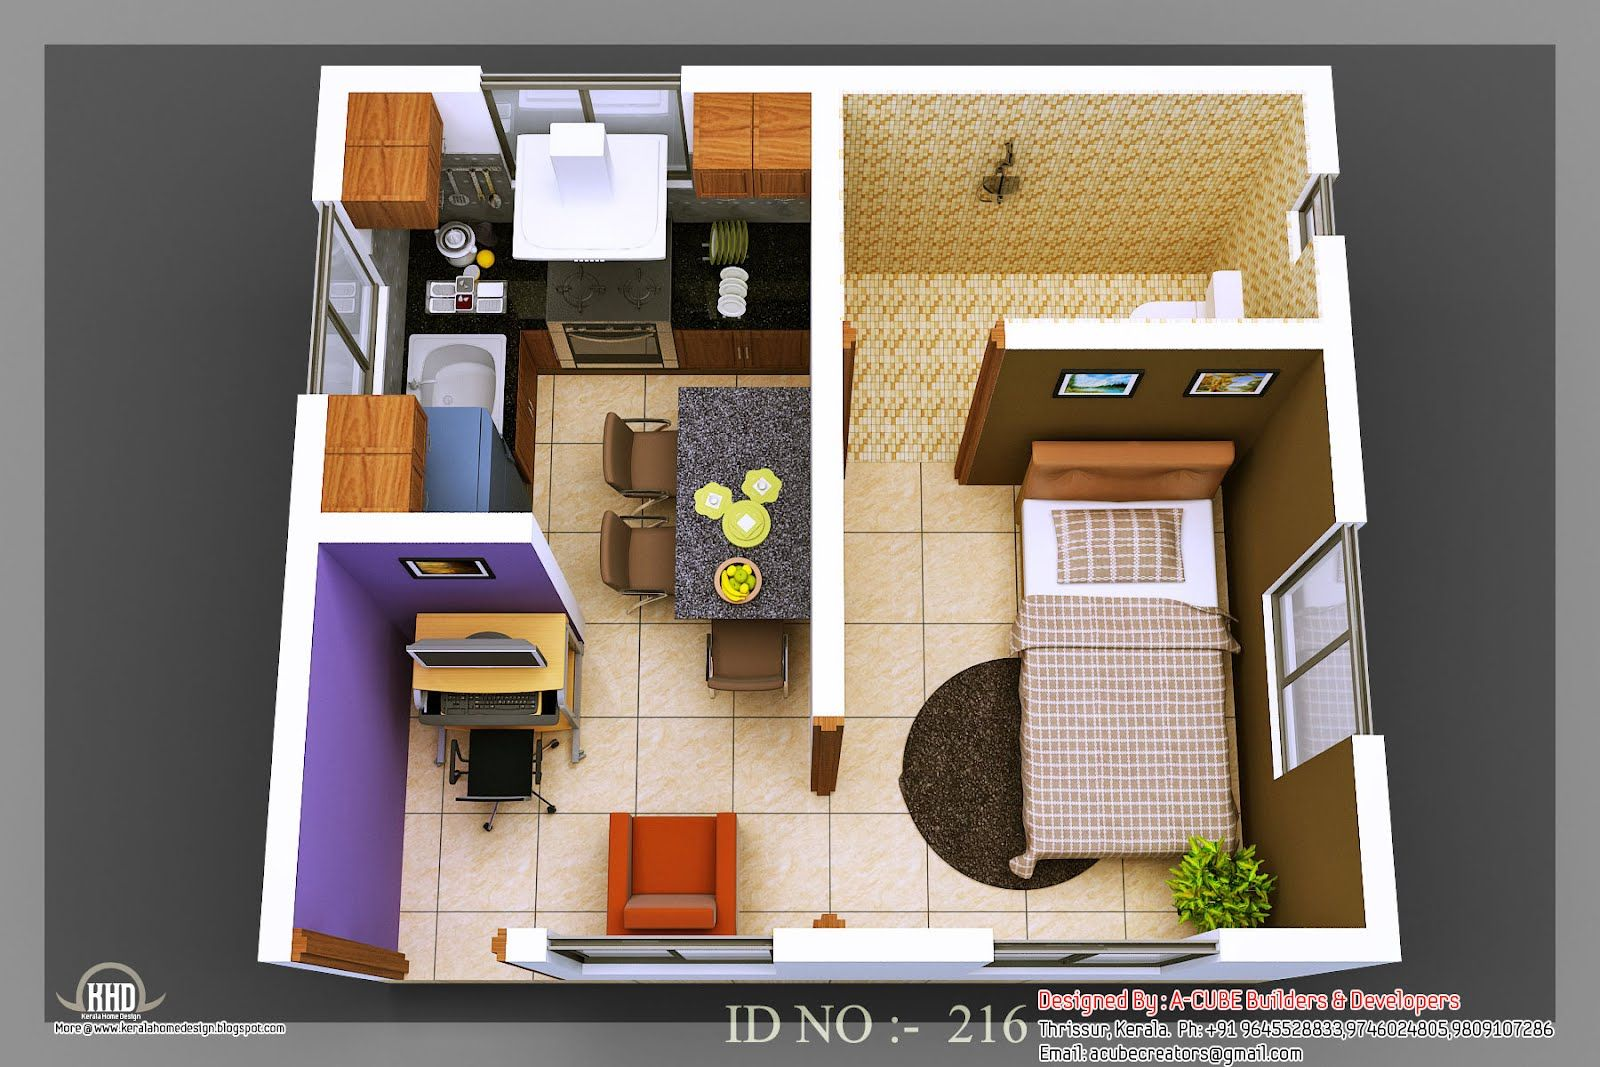 isometric views small house plans kerala home design floor information isometric small house plans - House Design Plans